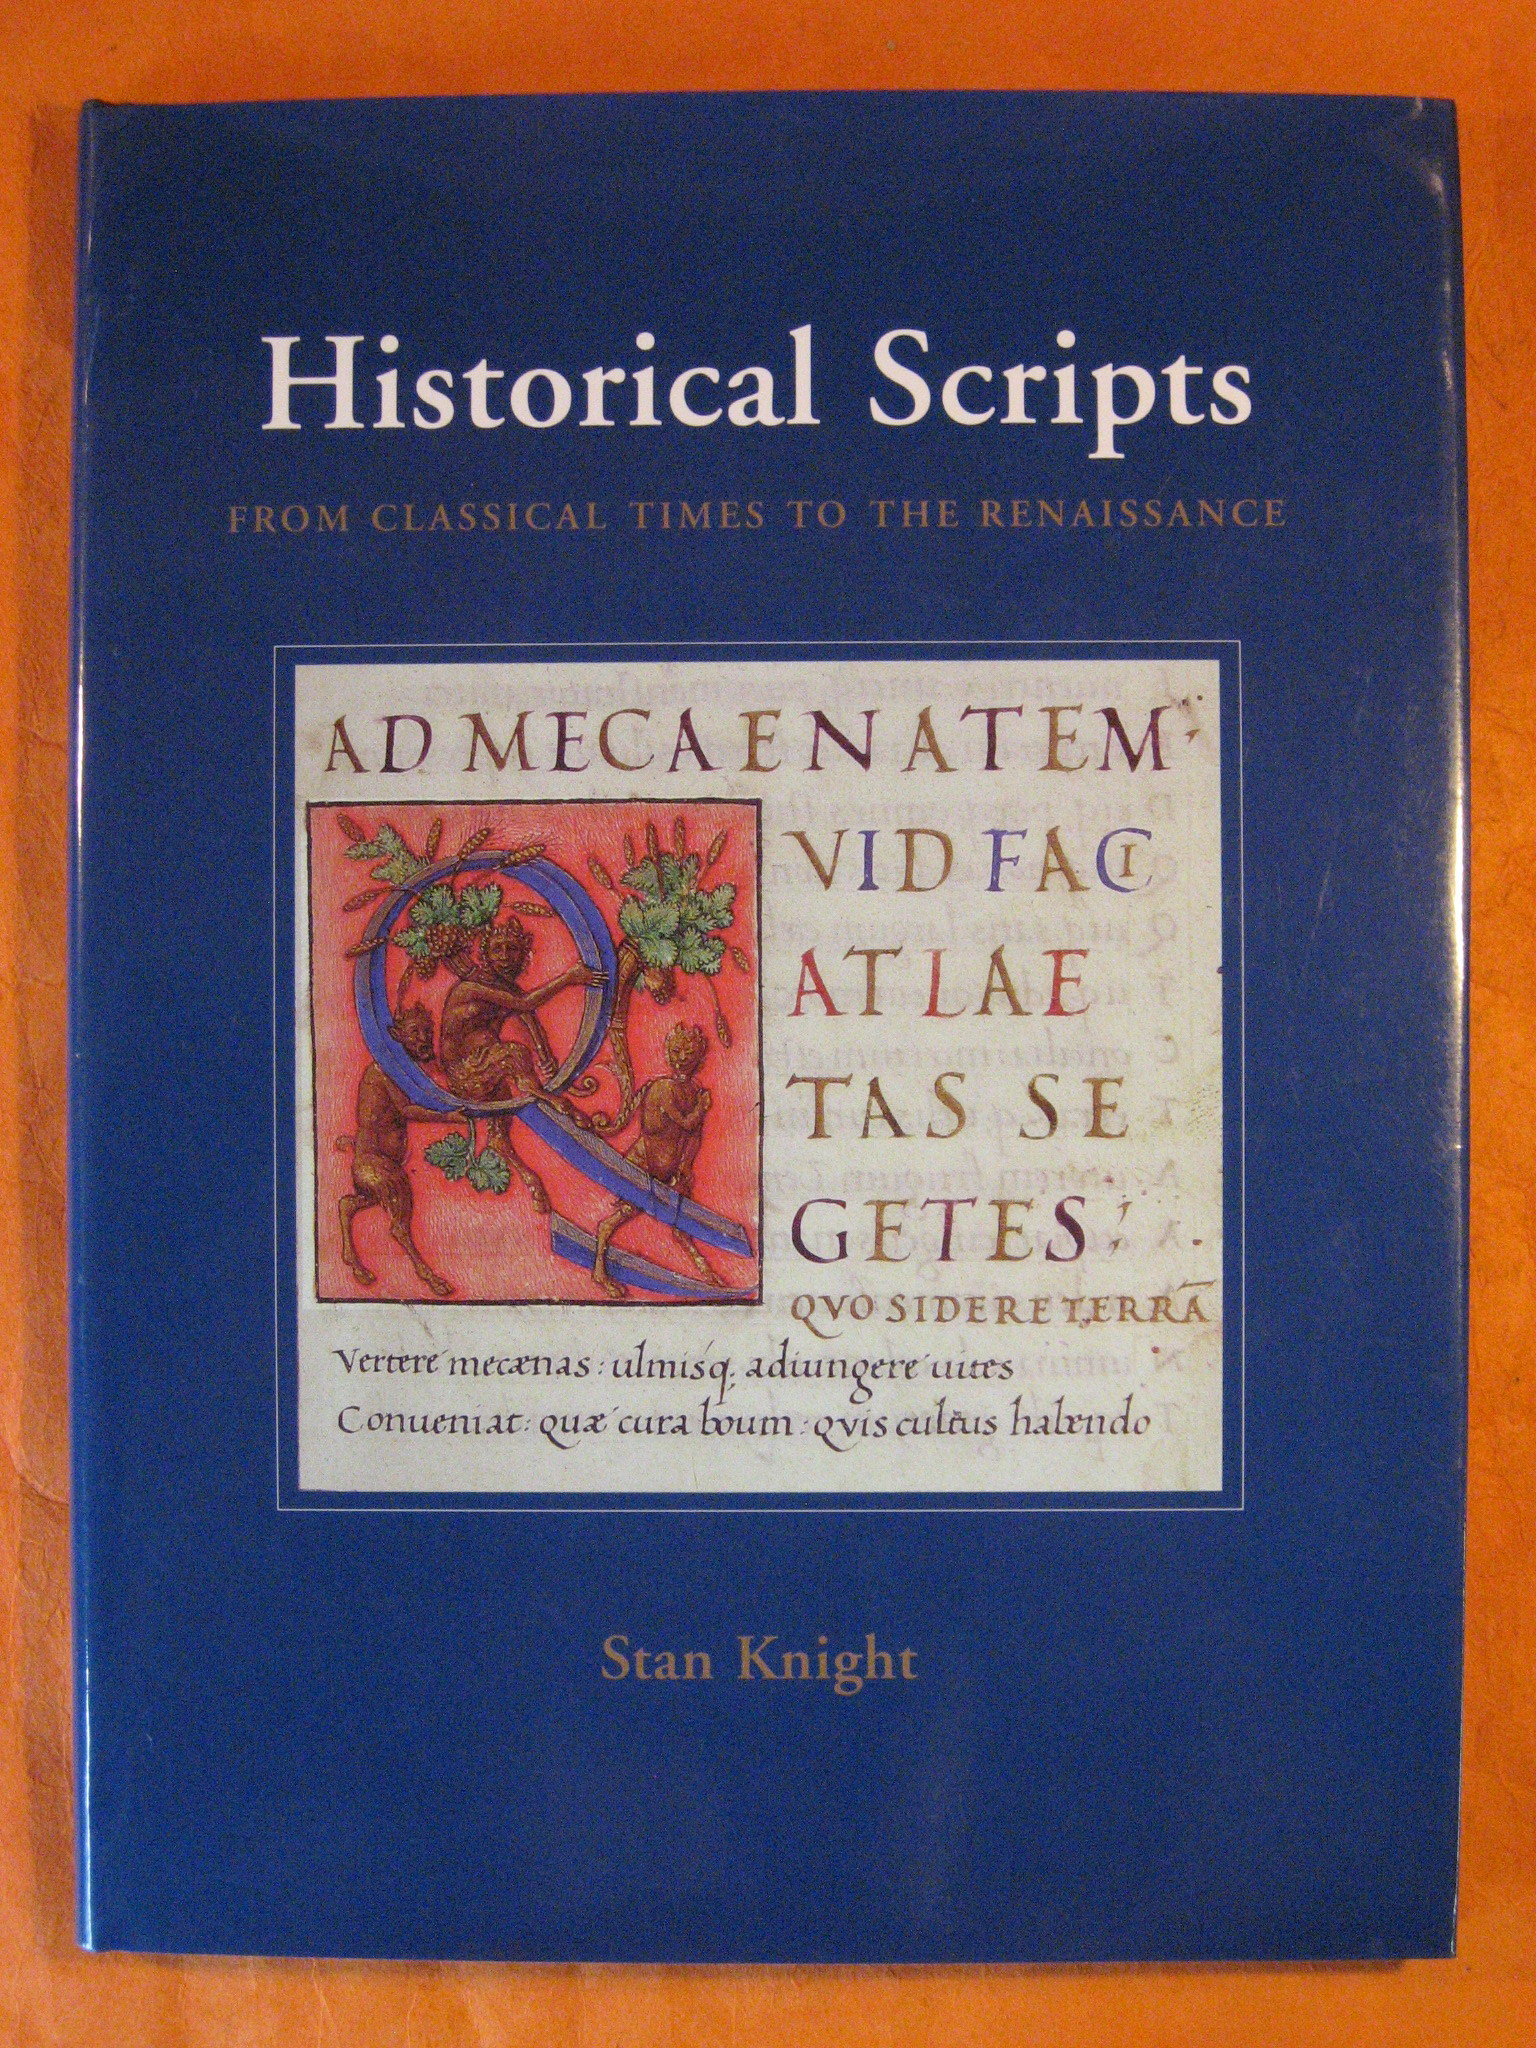 Historical Scripts: From Classical Times to the Renaissance